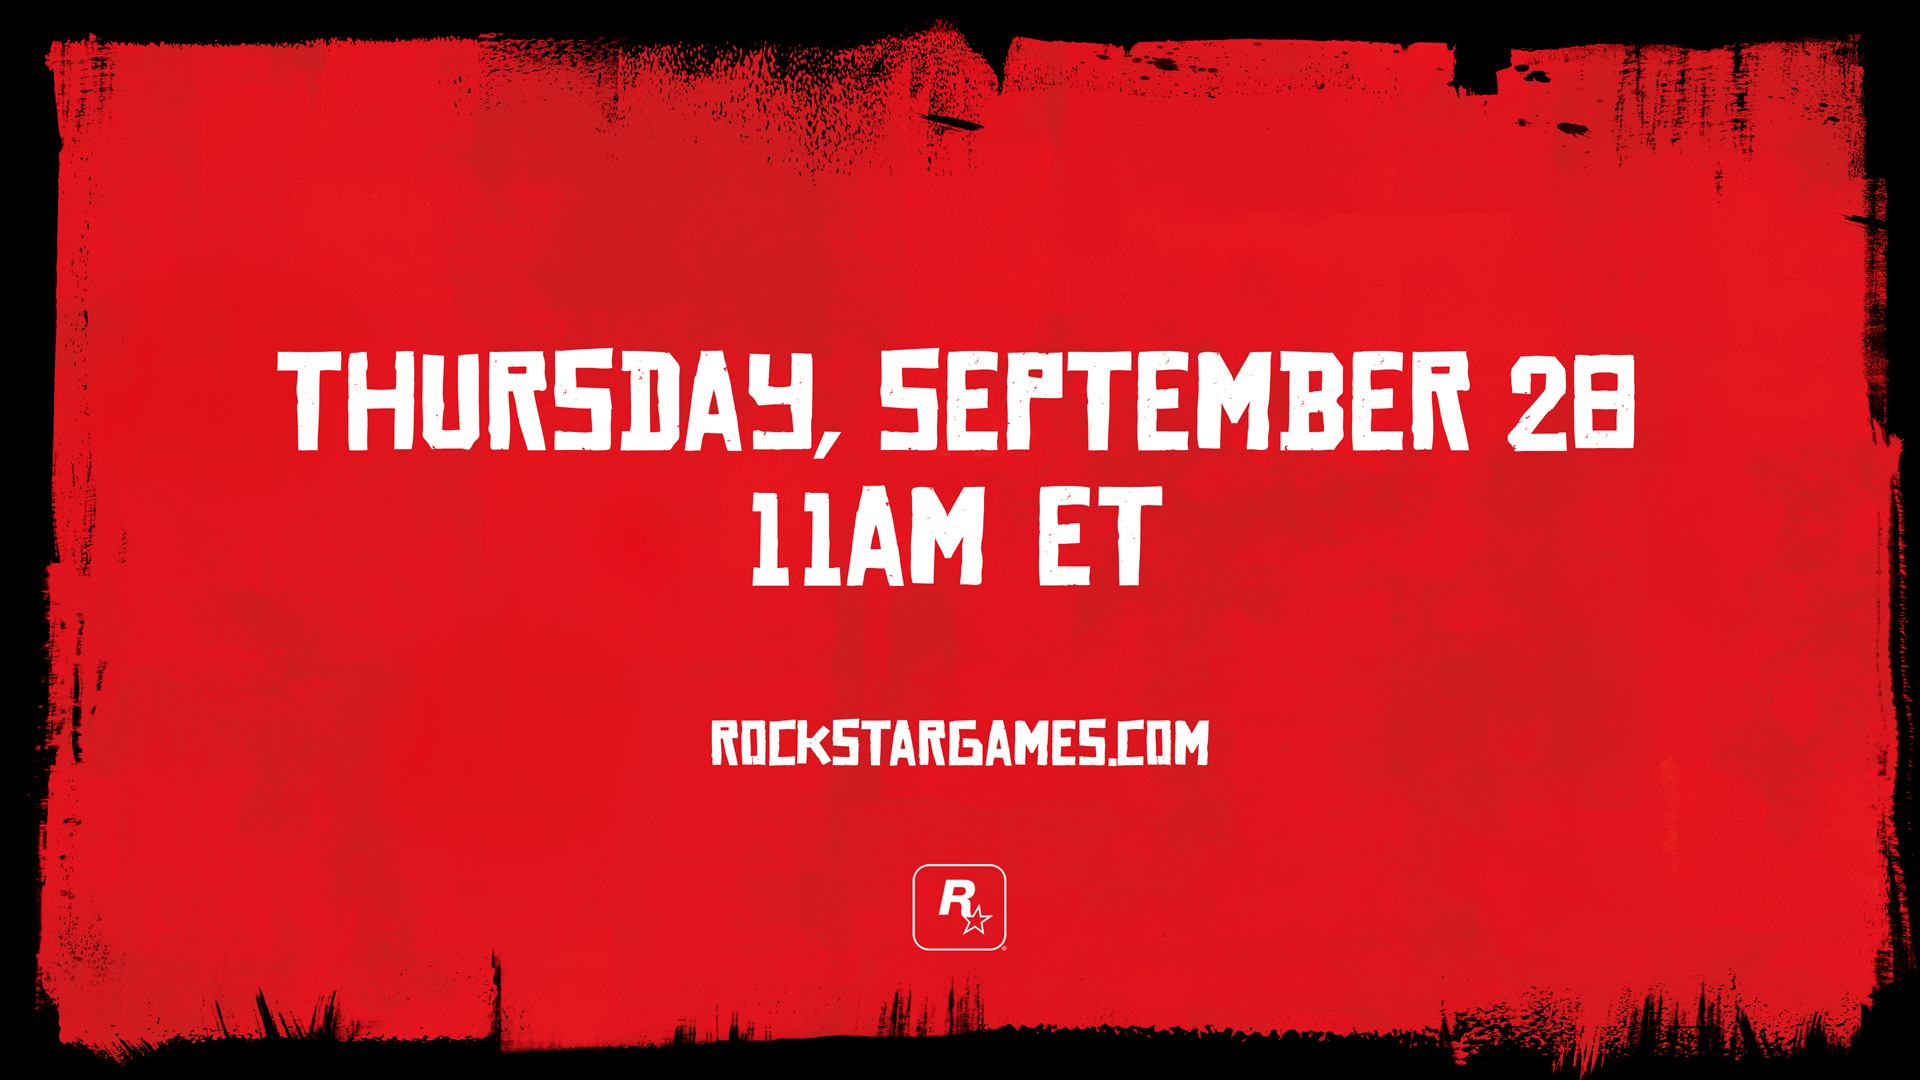 Red Dead Redemption 2 Info Teased For Next Week